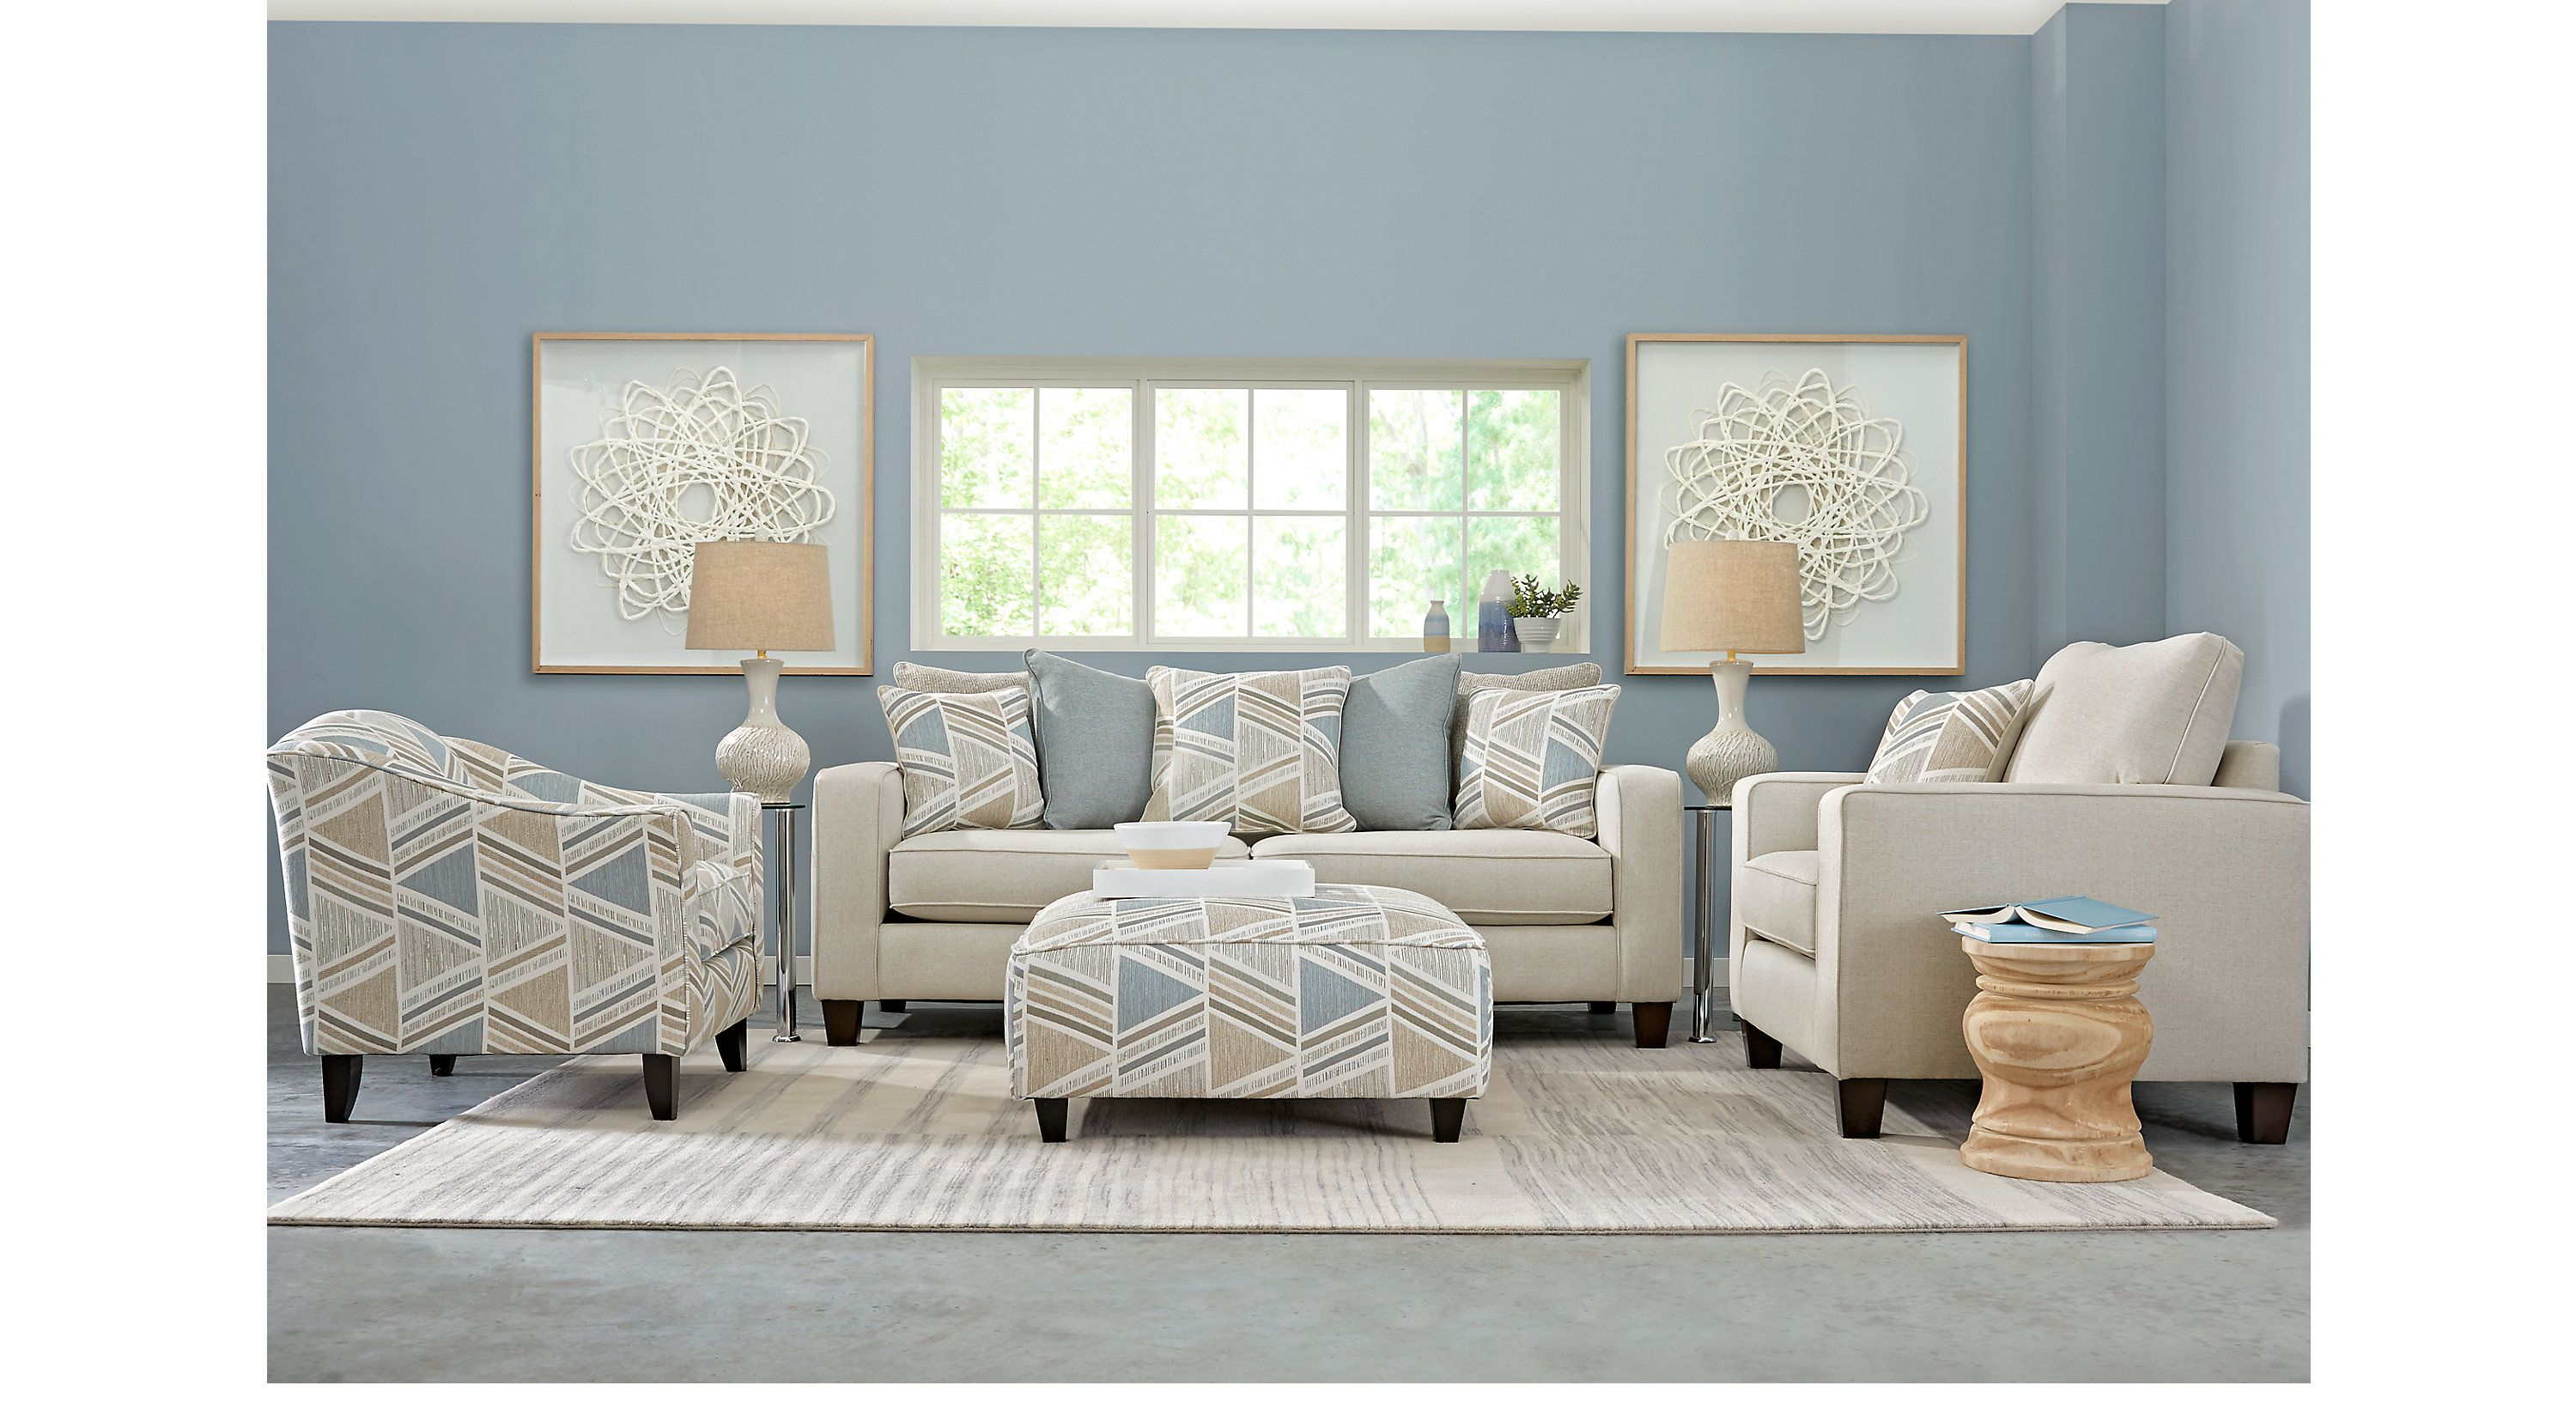 Grayfield Cream 7 Pc Living Room Living Room Sets Beige Living Room Sets Furniture Living Room Suite Grey And Red Living Room #upholstery #living #room #furniture